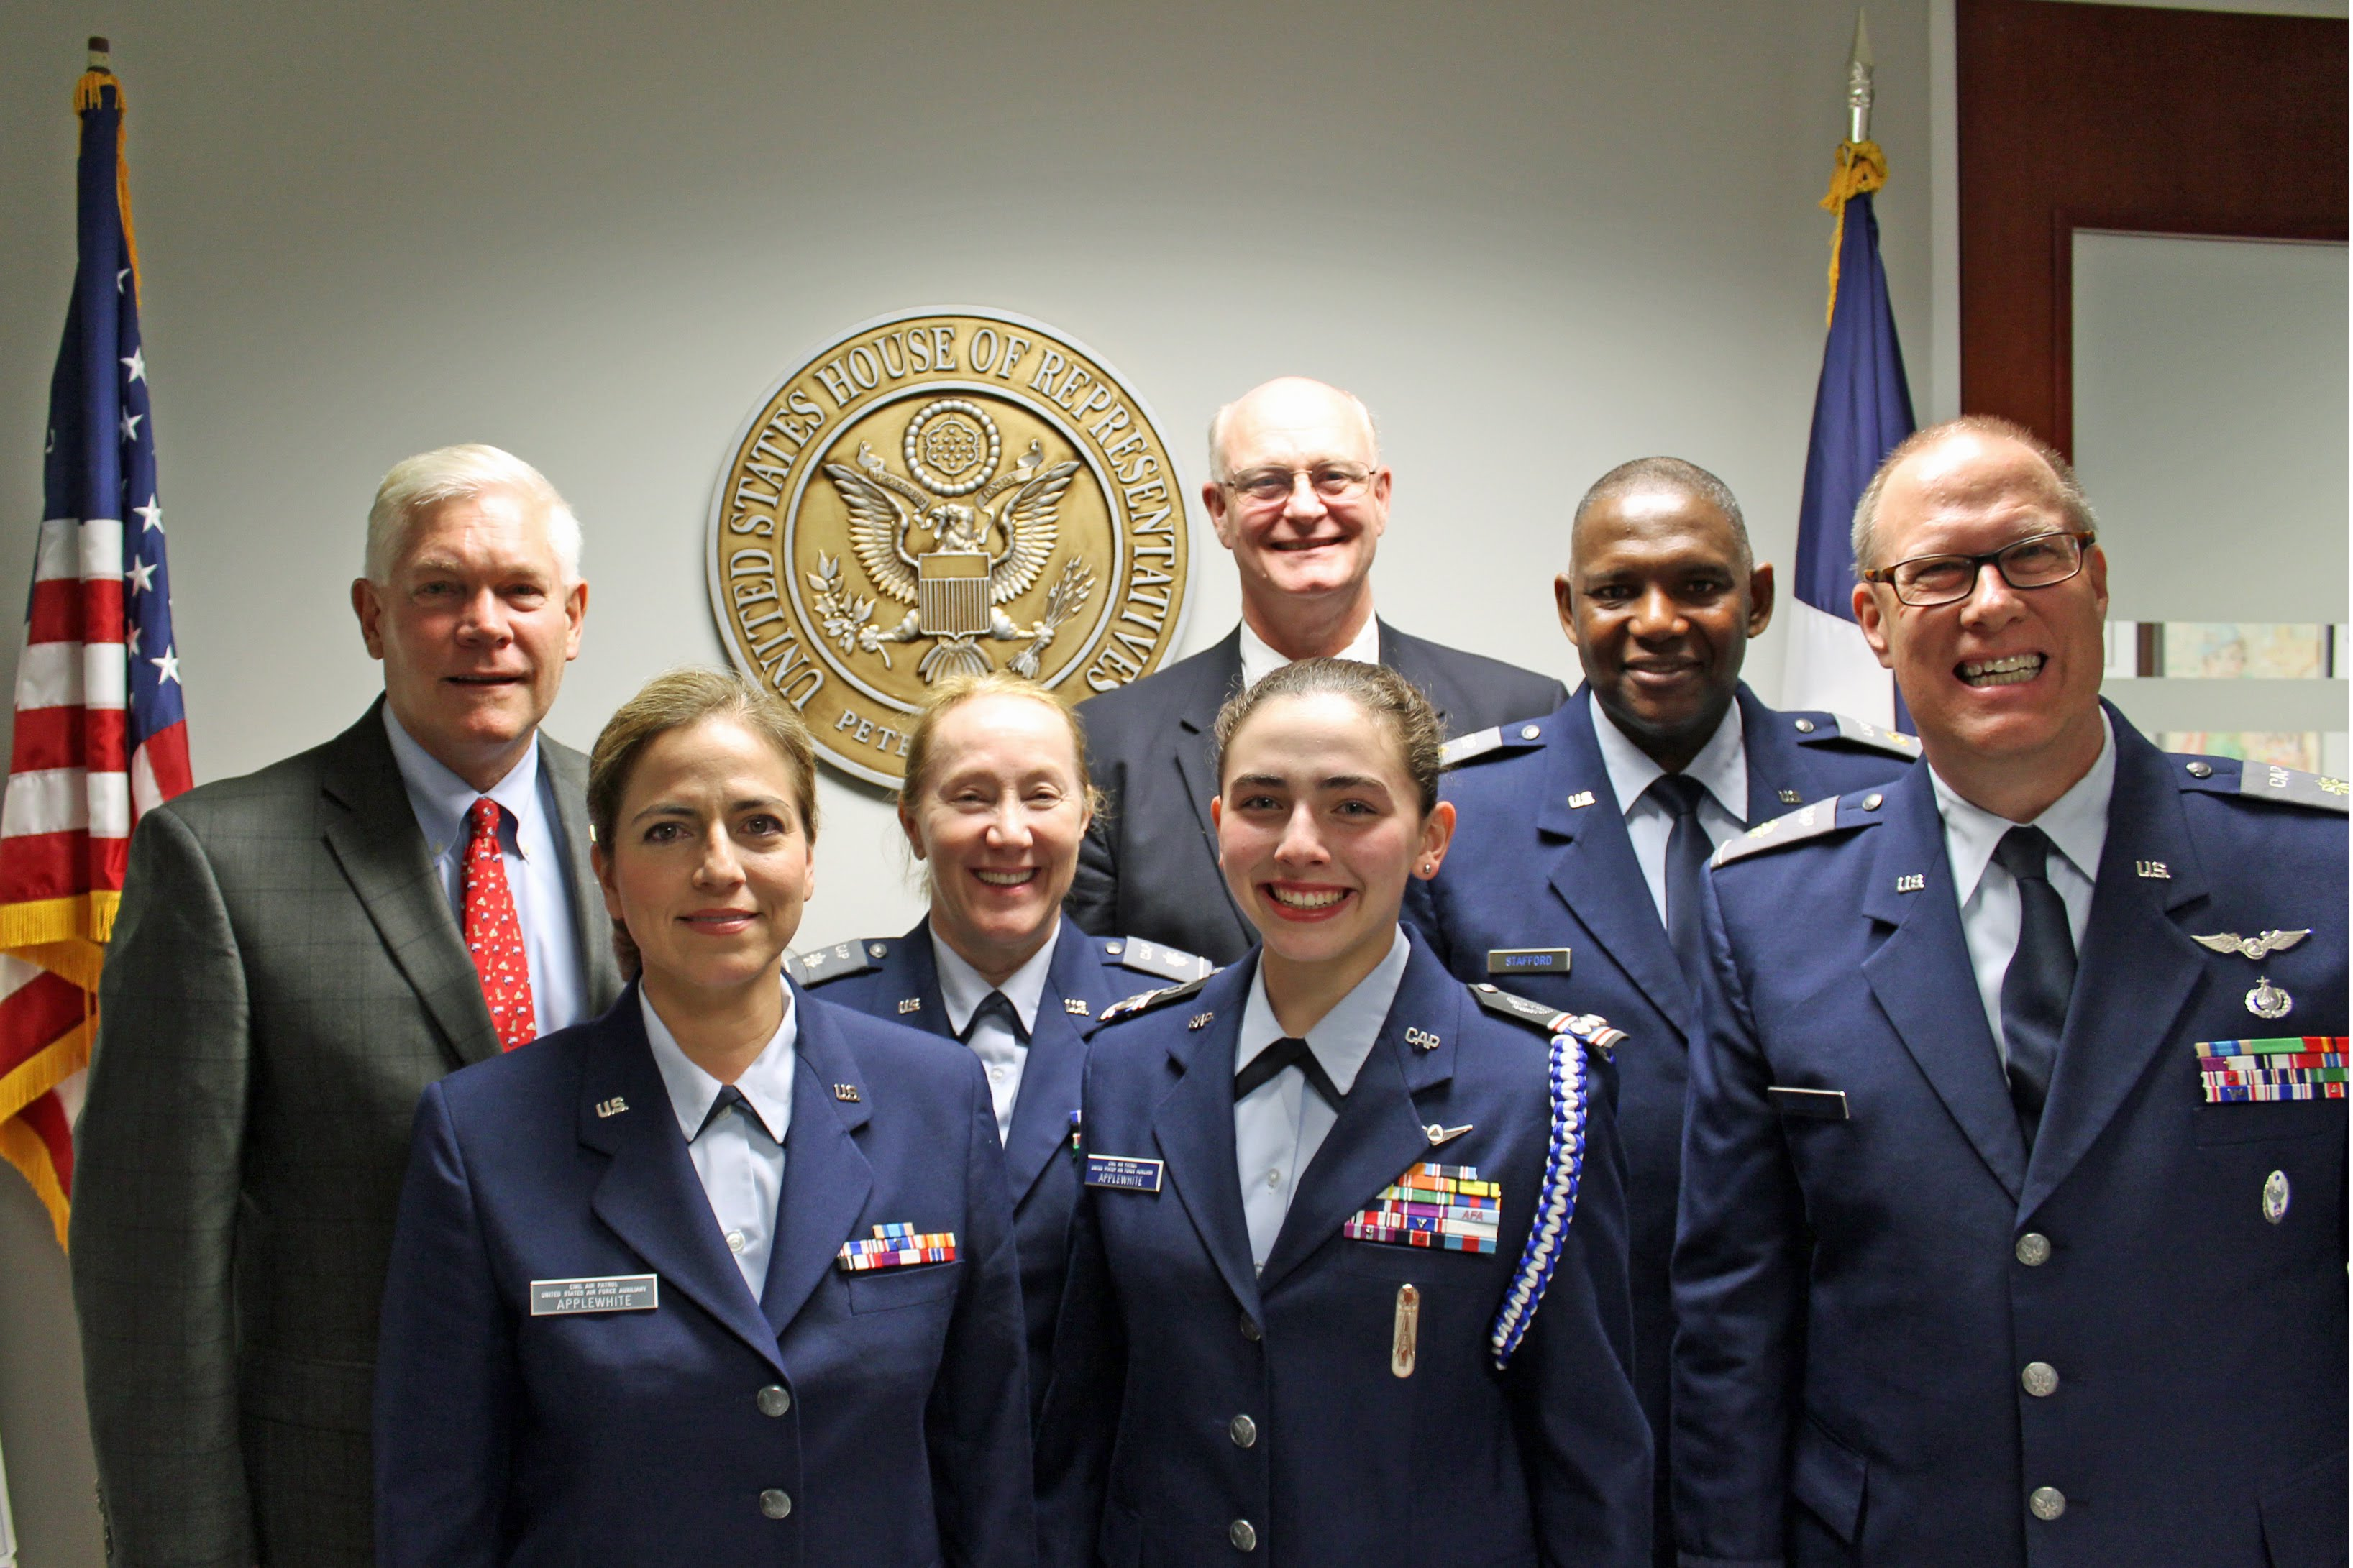 Pictured with U.S. Rep. Pete Sessions are Texas Wing Group III Civil Air Patrol members, left to right: (back row) Lt Col Phillip Crawford, Maj John Stafford, Maj Don Gulliksen, (front row) 1st Lt Blanca Applewhite, Lt Col Kelley Johnson, and C/Capt Madison Applewhite.